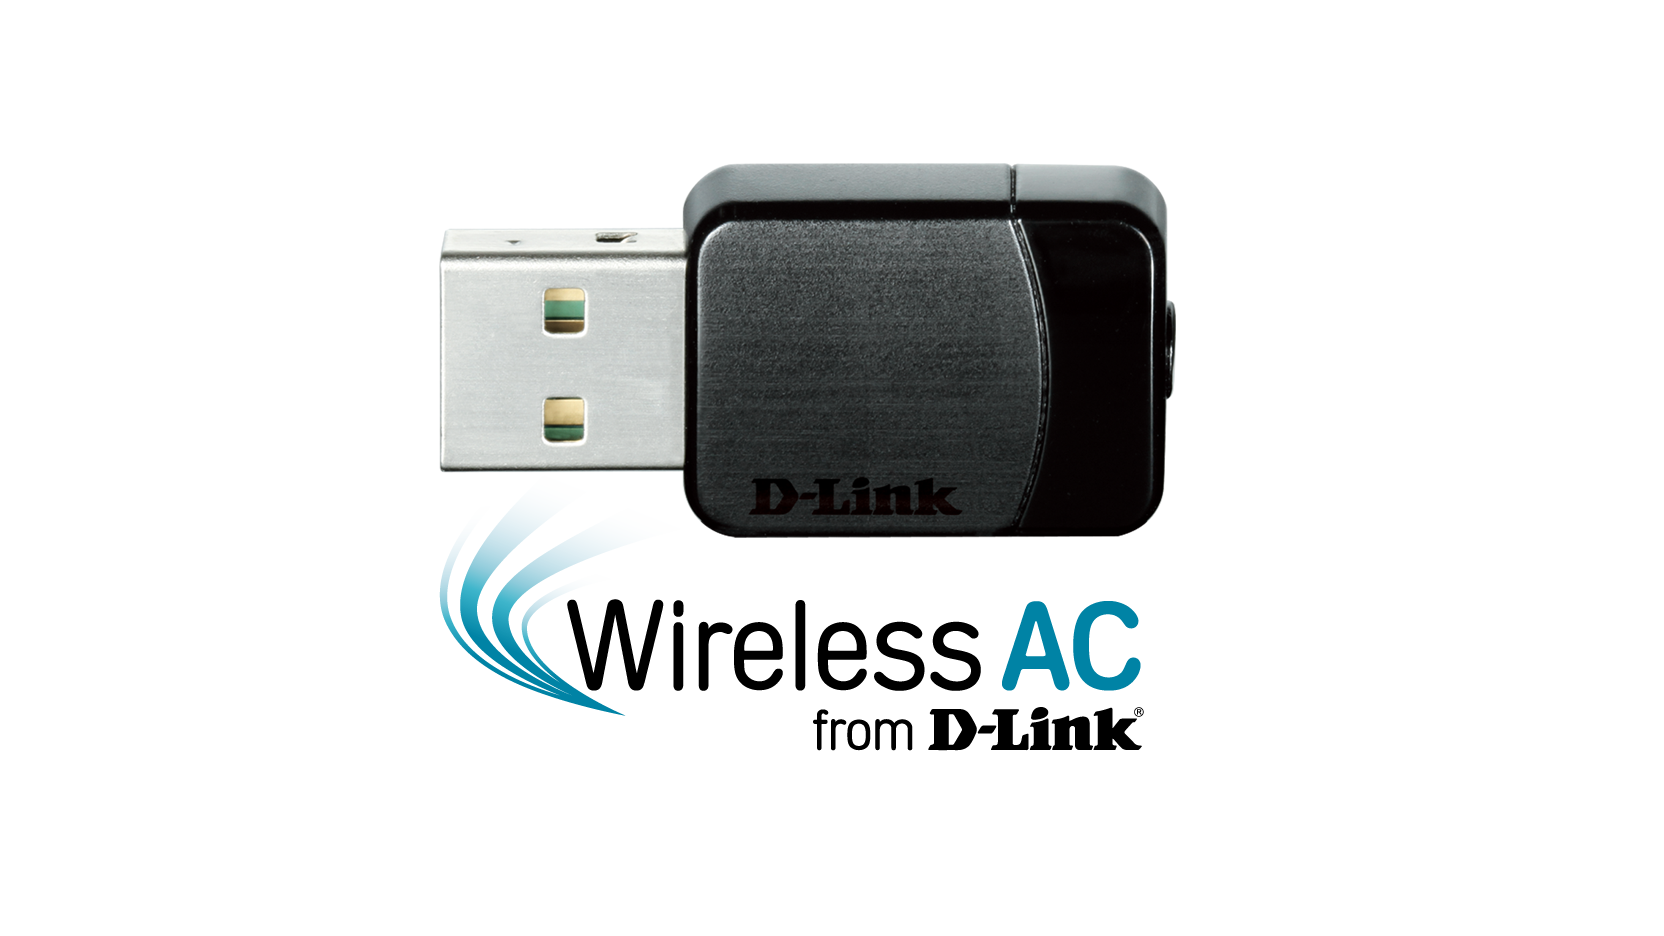 Ac600 Mu Mimo Wi Fi Usb Adapter D Link Uk